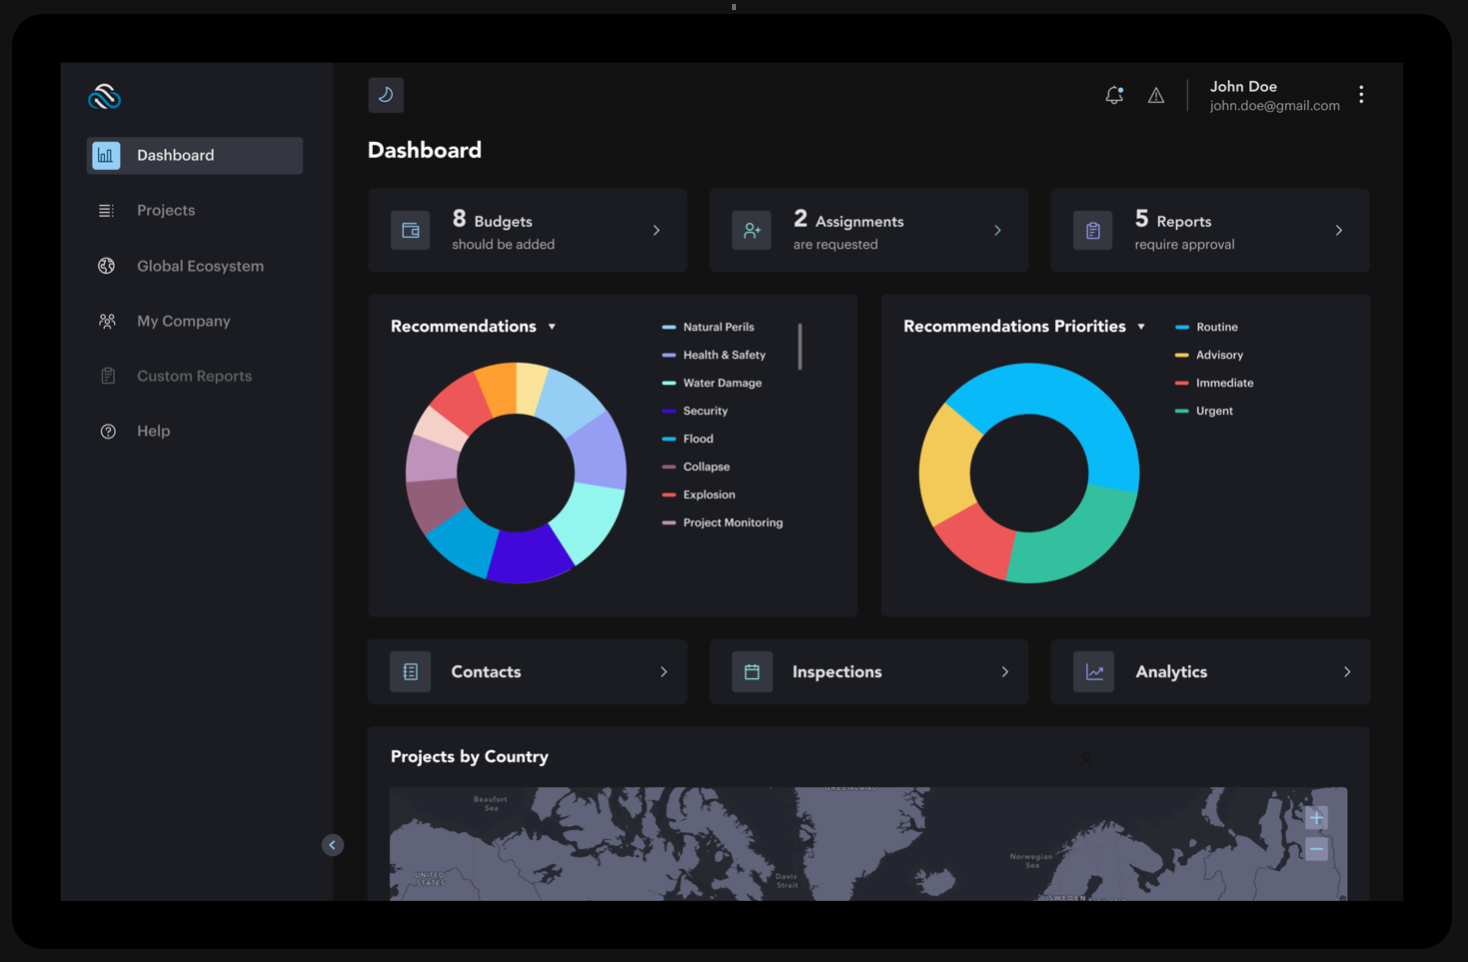 iMitig8 Risk Global provides users with a dashboard to manage their projects, risks and recommendations